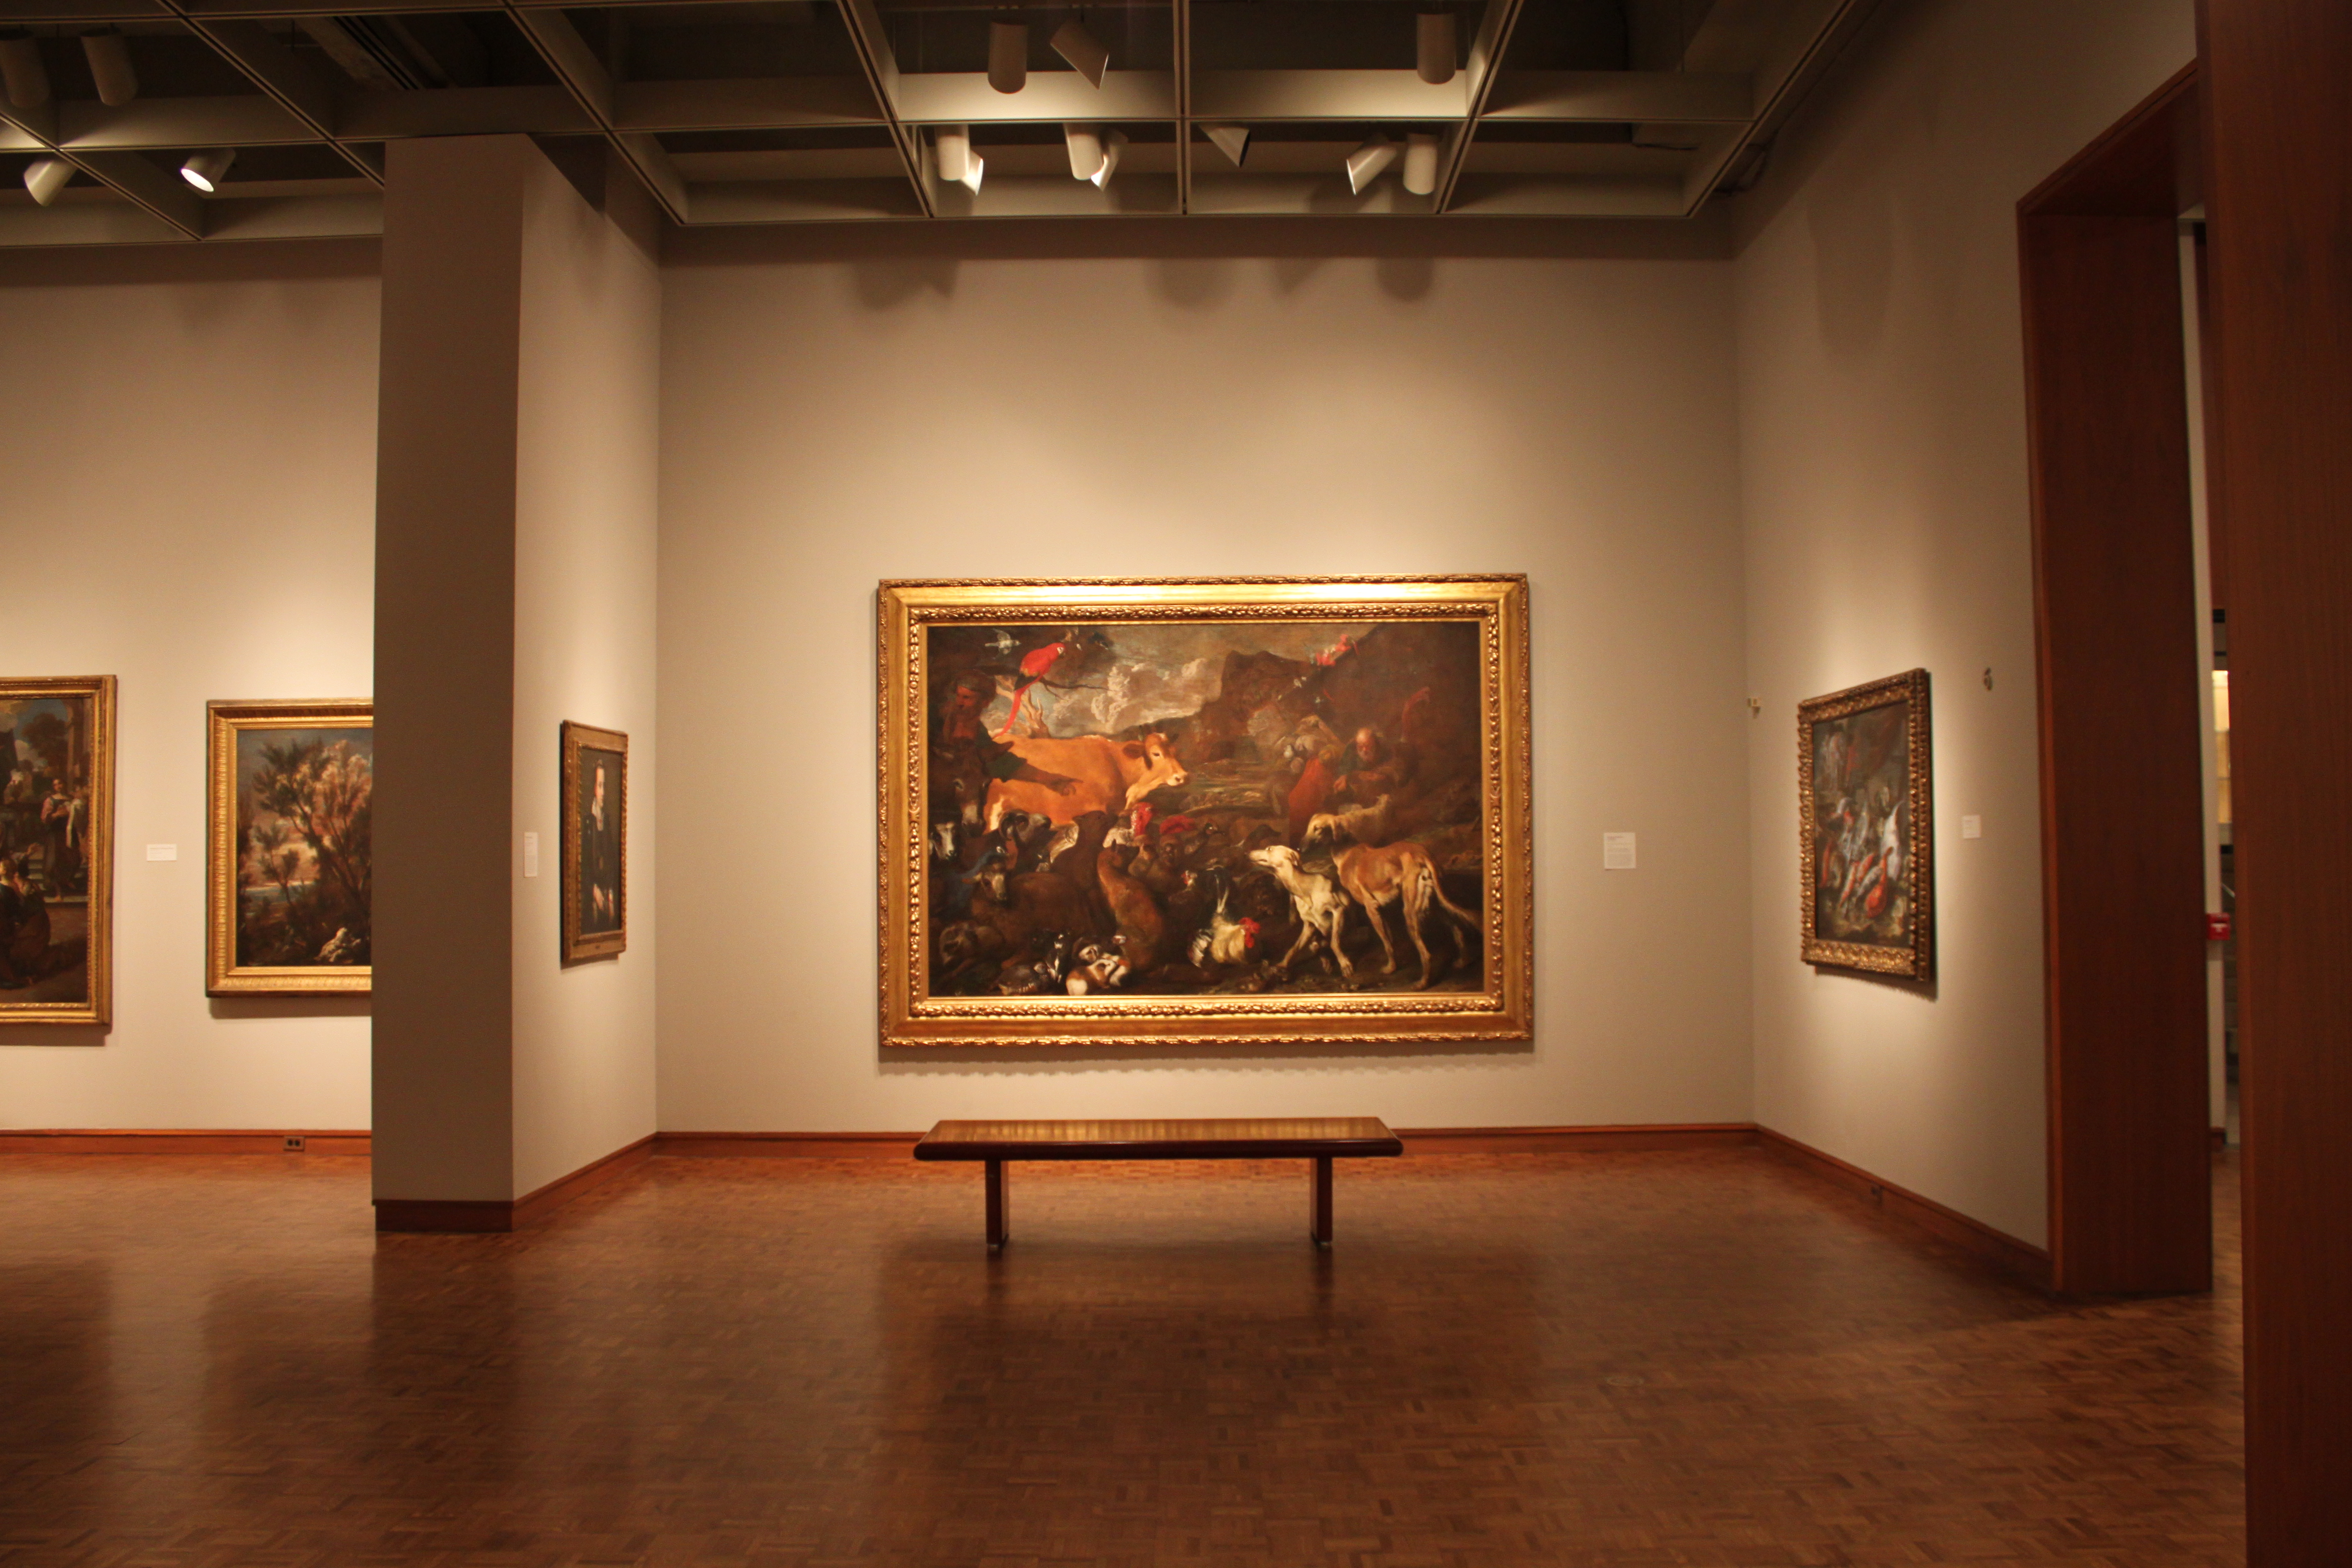 View of Giovanni Benedetto Castiglione, Noah and the Animals Entering the Ark, ca. 1650. Oil on canvas. Centennial Gift of Friends of Art, Myron and Elizabeth P. Laskin Fund, Fine Arts Society, Friends of Art Board of Directors, Francis and Rose Mary Matusinec, Burton and Charlotte Zucker, and the Milwaukee community. Photo by the author.